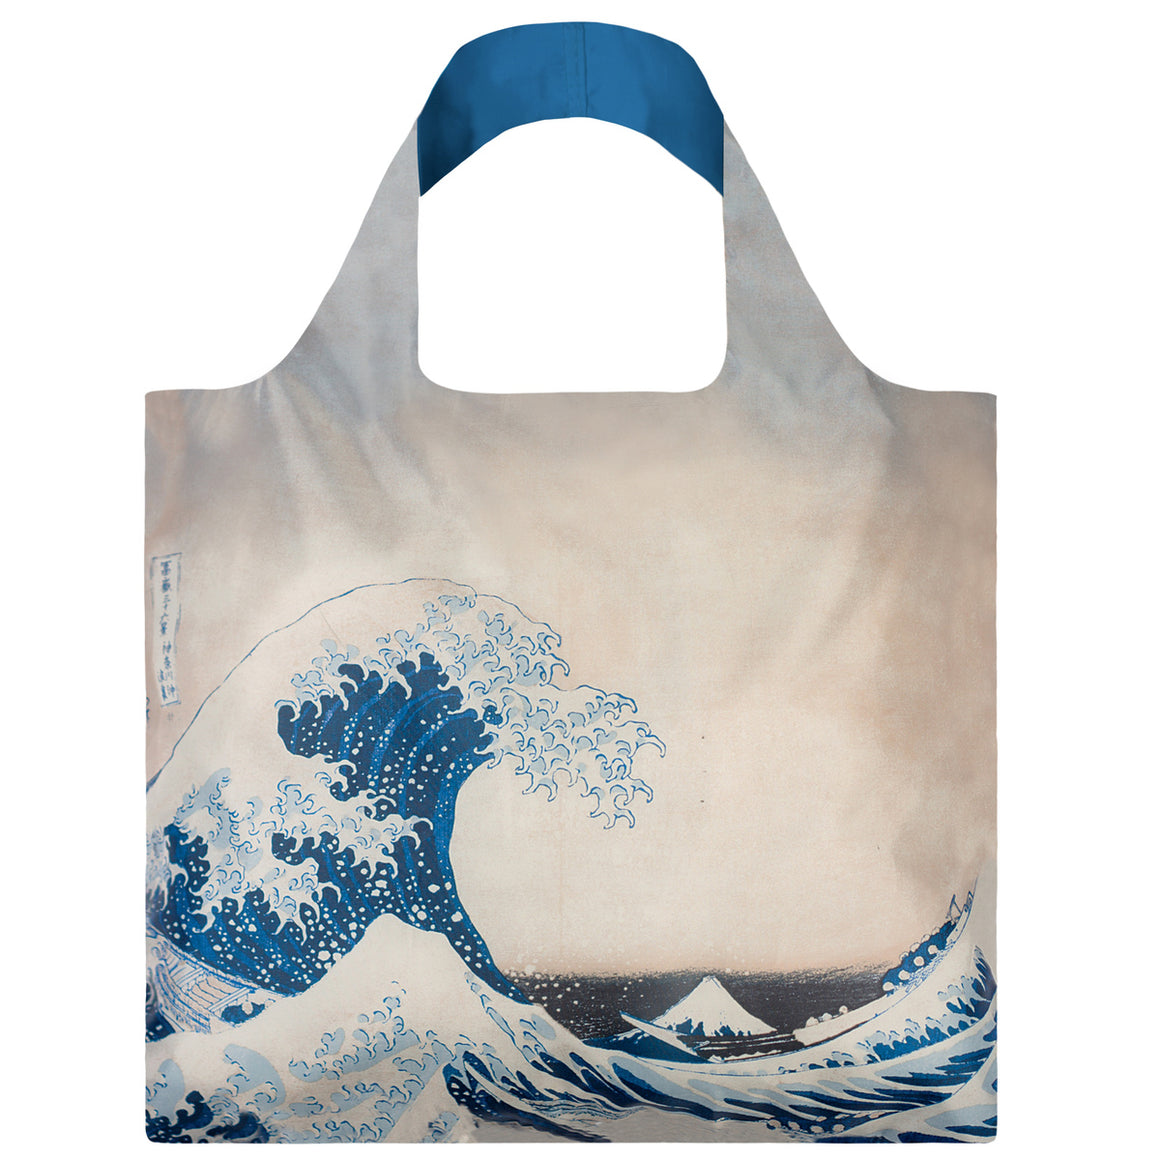 A Blue and white Shopping Bag featuring the iconic print of the Great Wave, or a tsunami by Hokusai